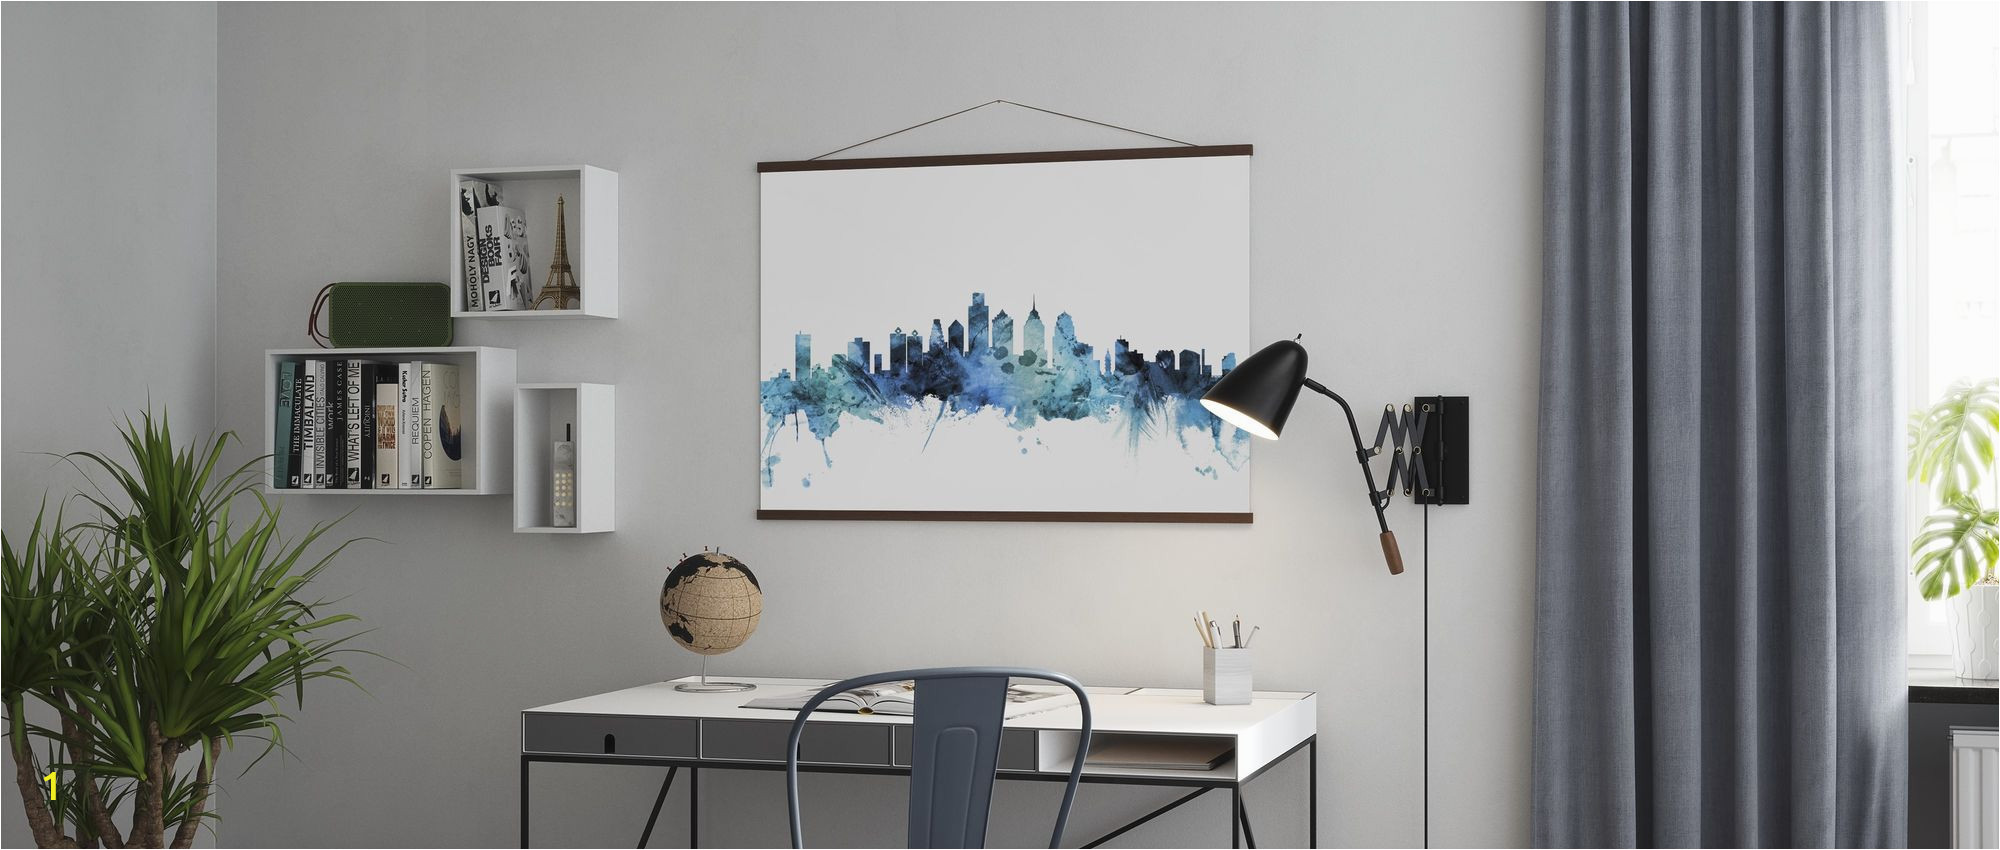 Philadelphia Skyline Wall Mural 1